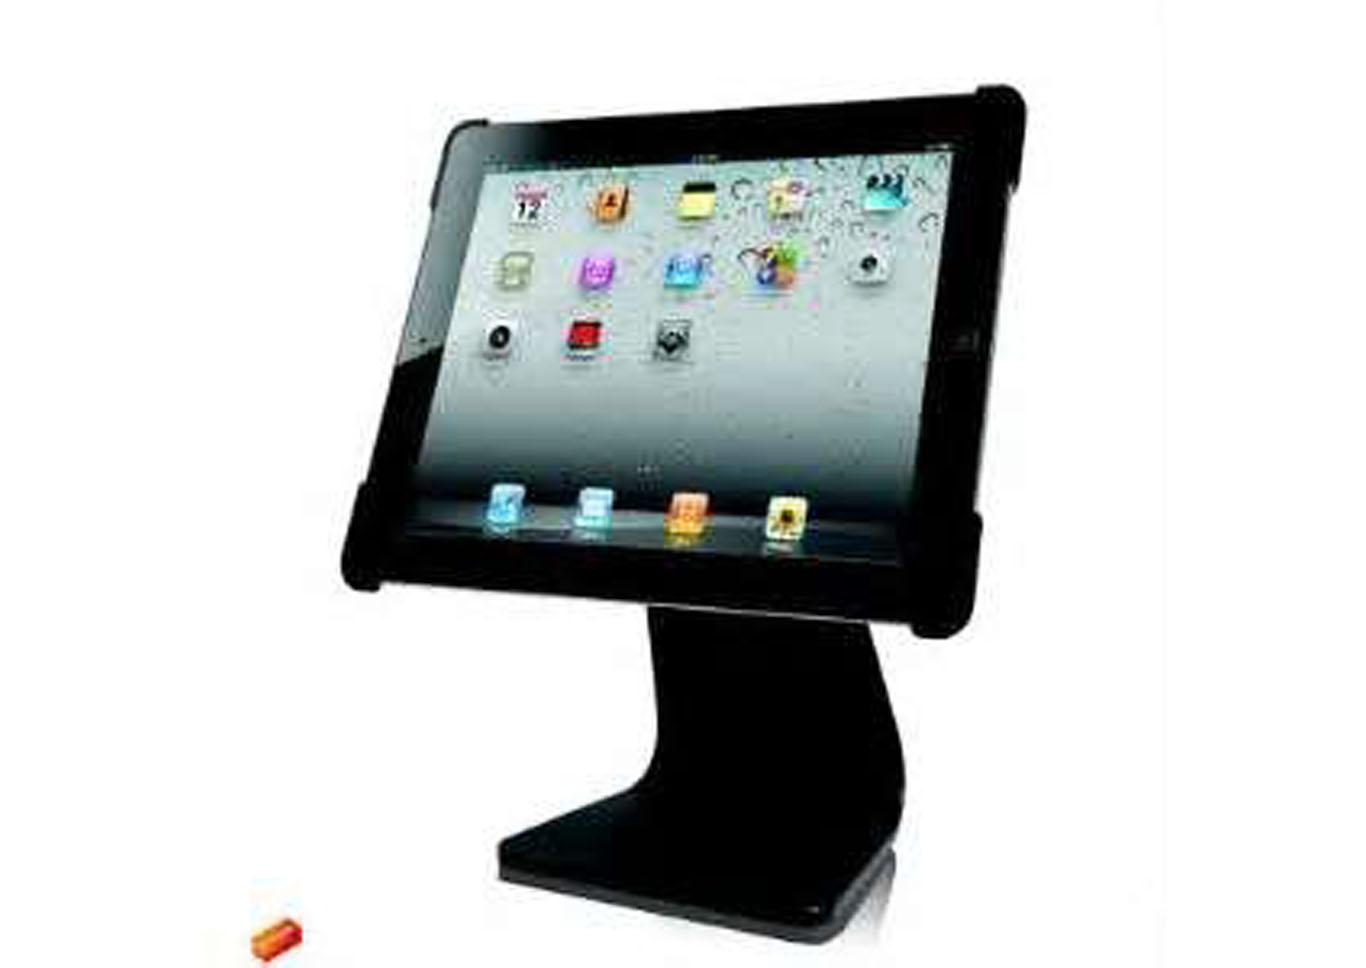 Desktop Iron Stand for iPad and iPad 2 - Black,Instore